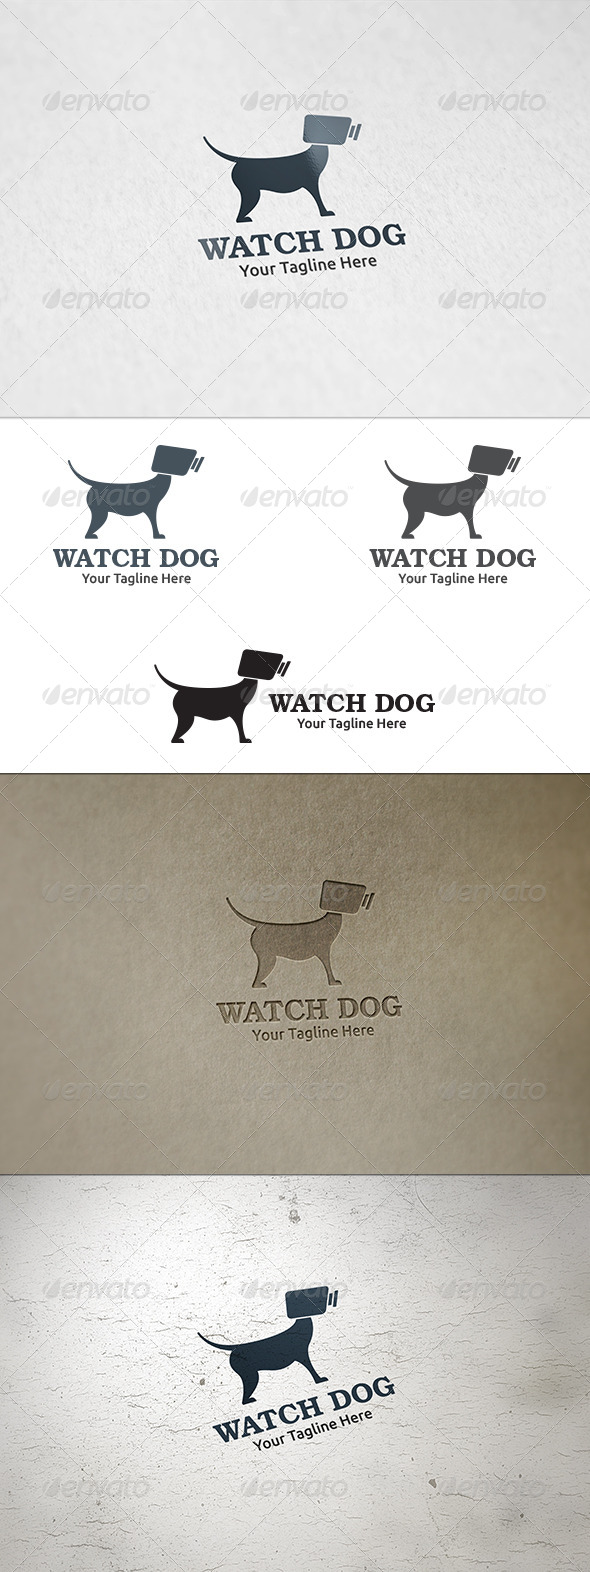 GraphicRiver Watch Dog Logo Template 8688774